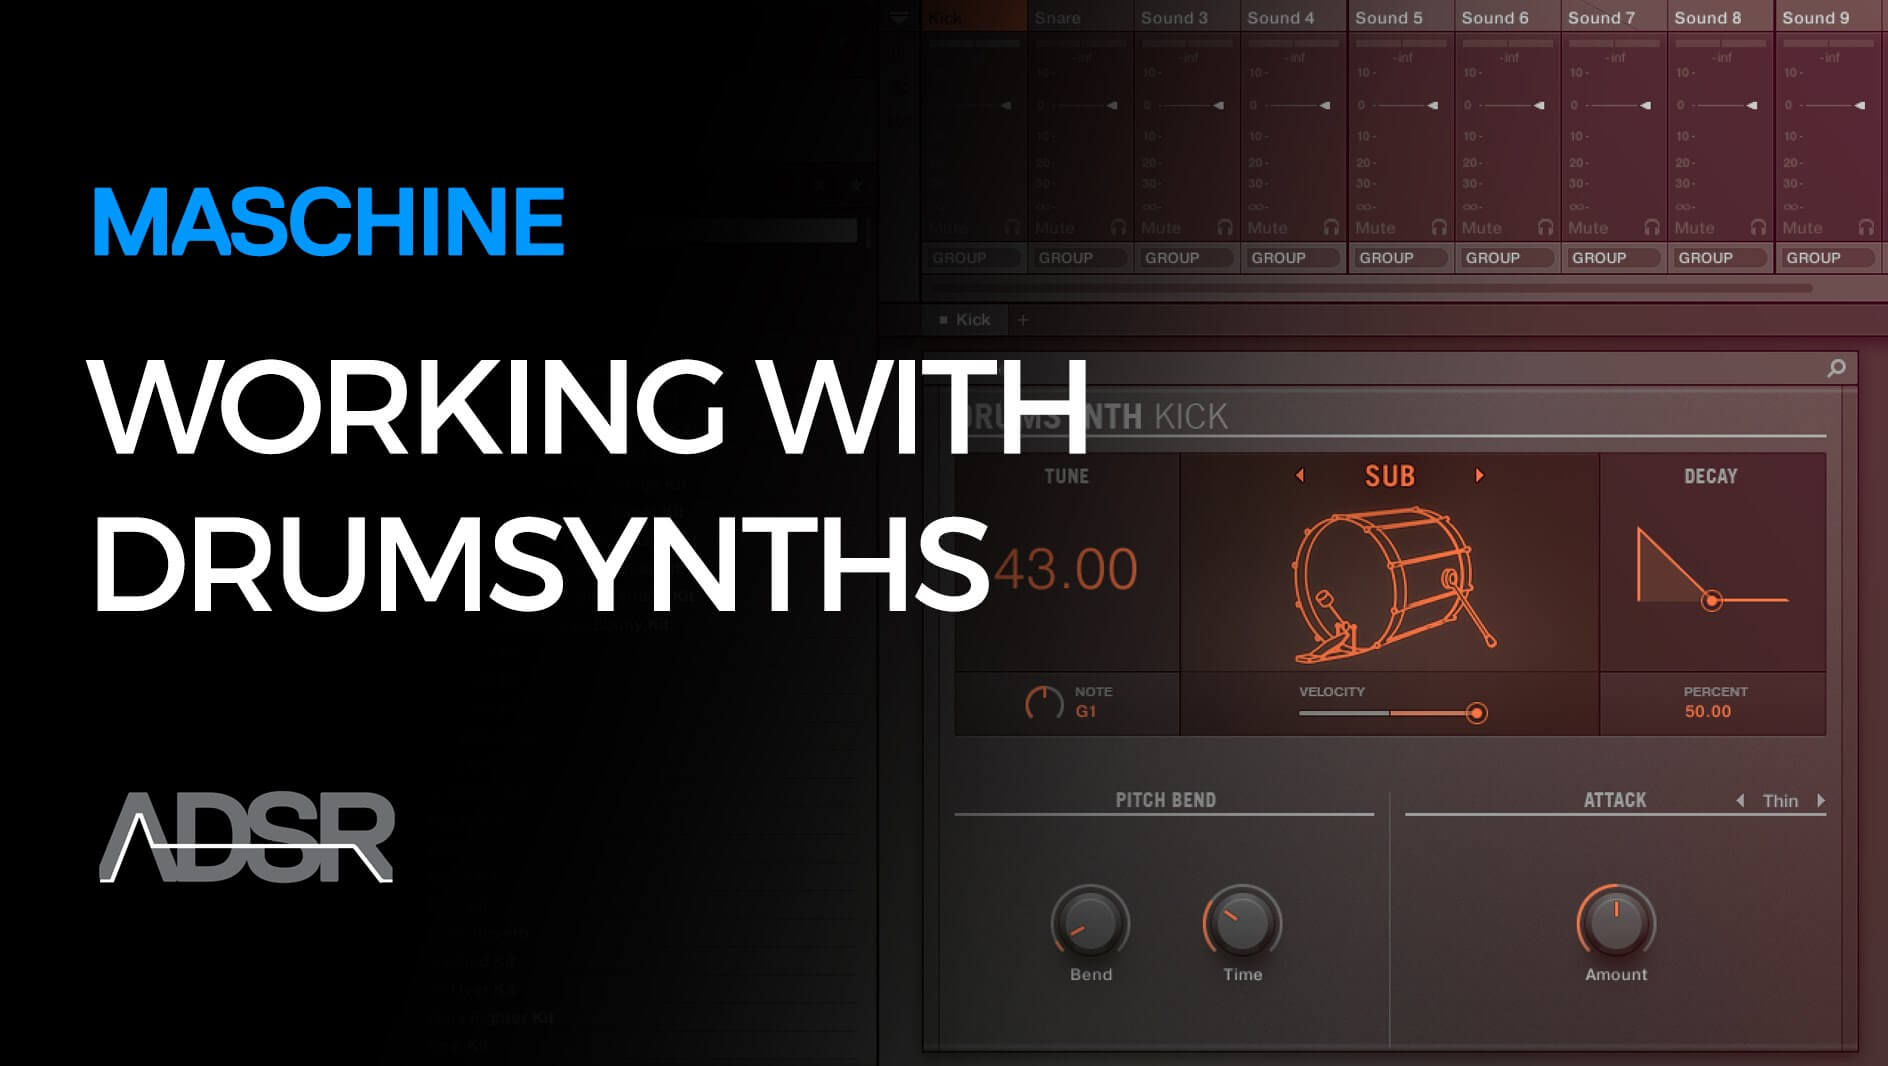 Working with Drumsynth in Maschine Part 1